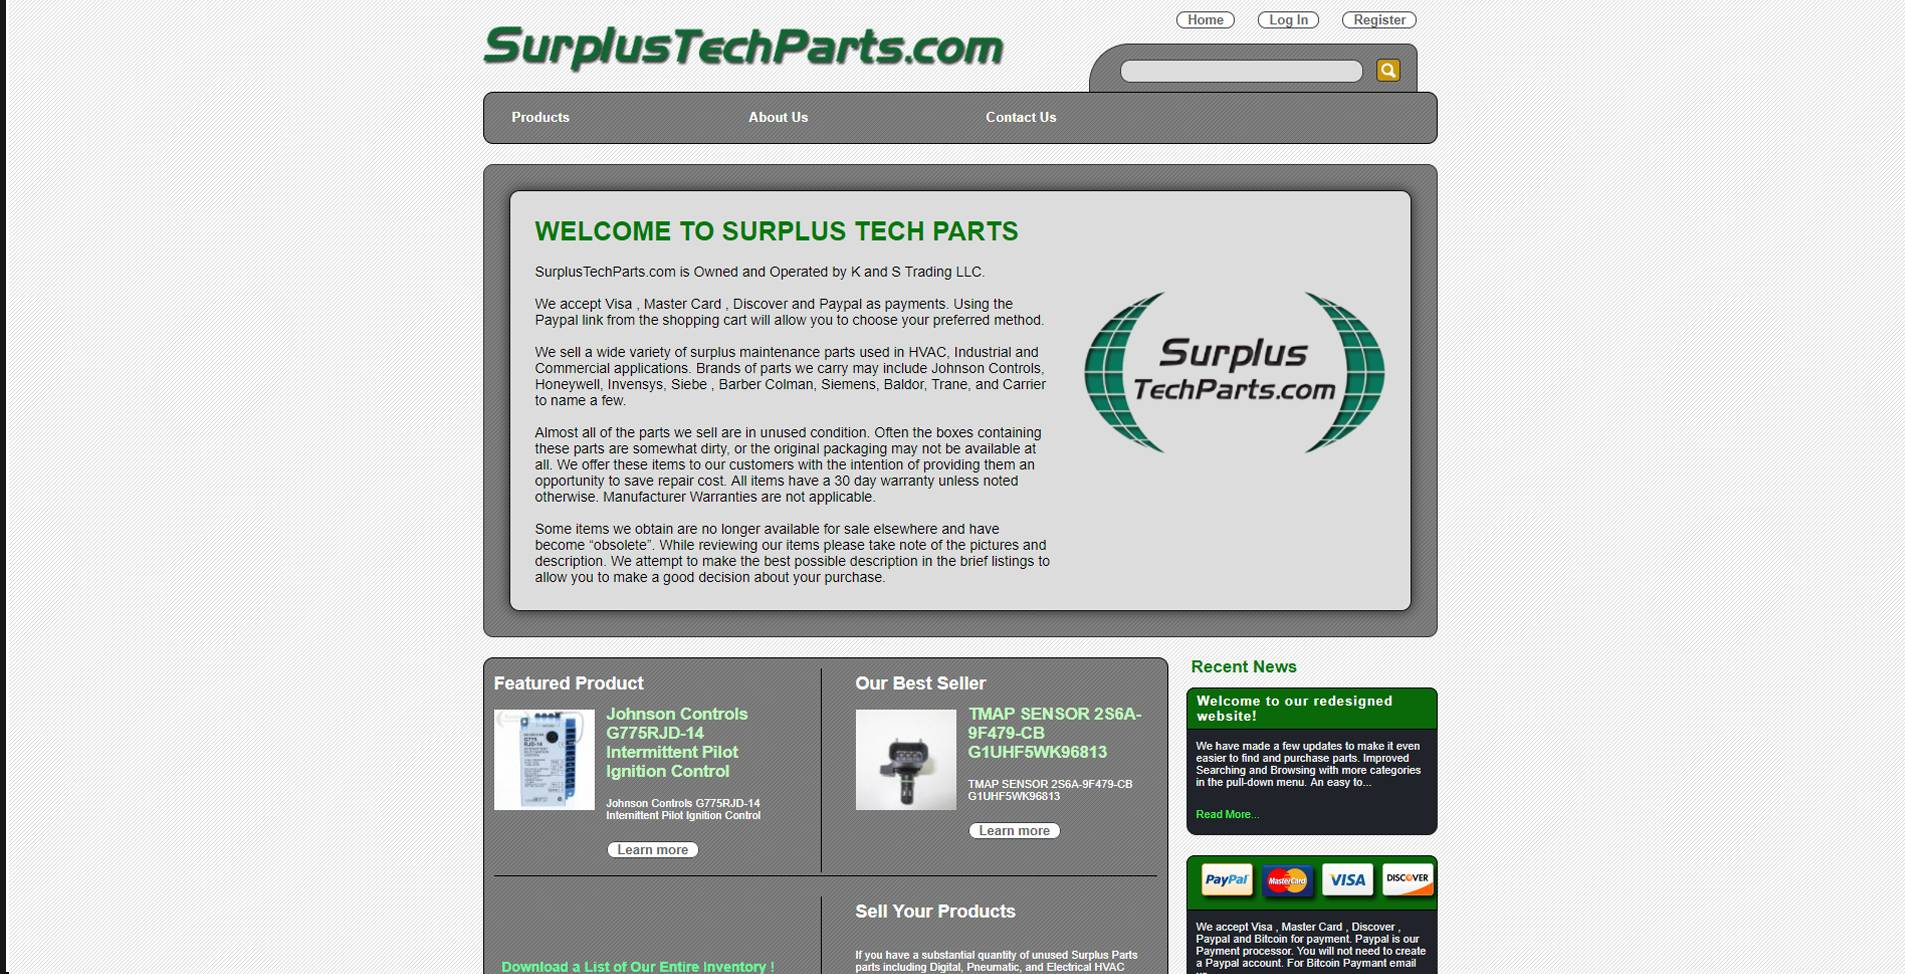 SurplusTechParts